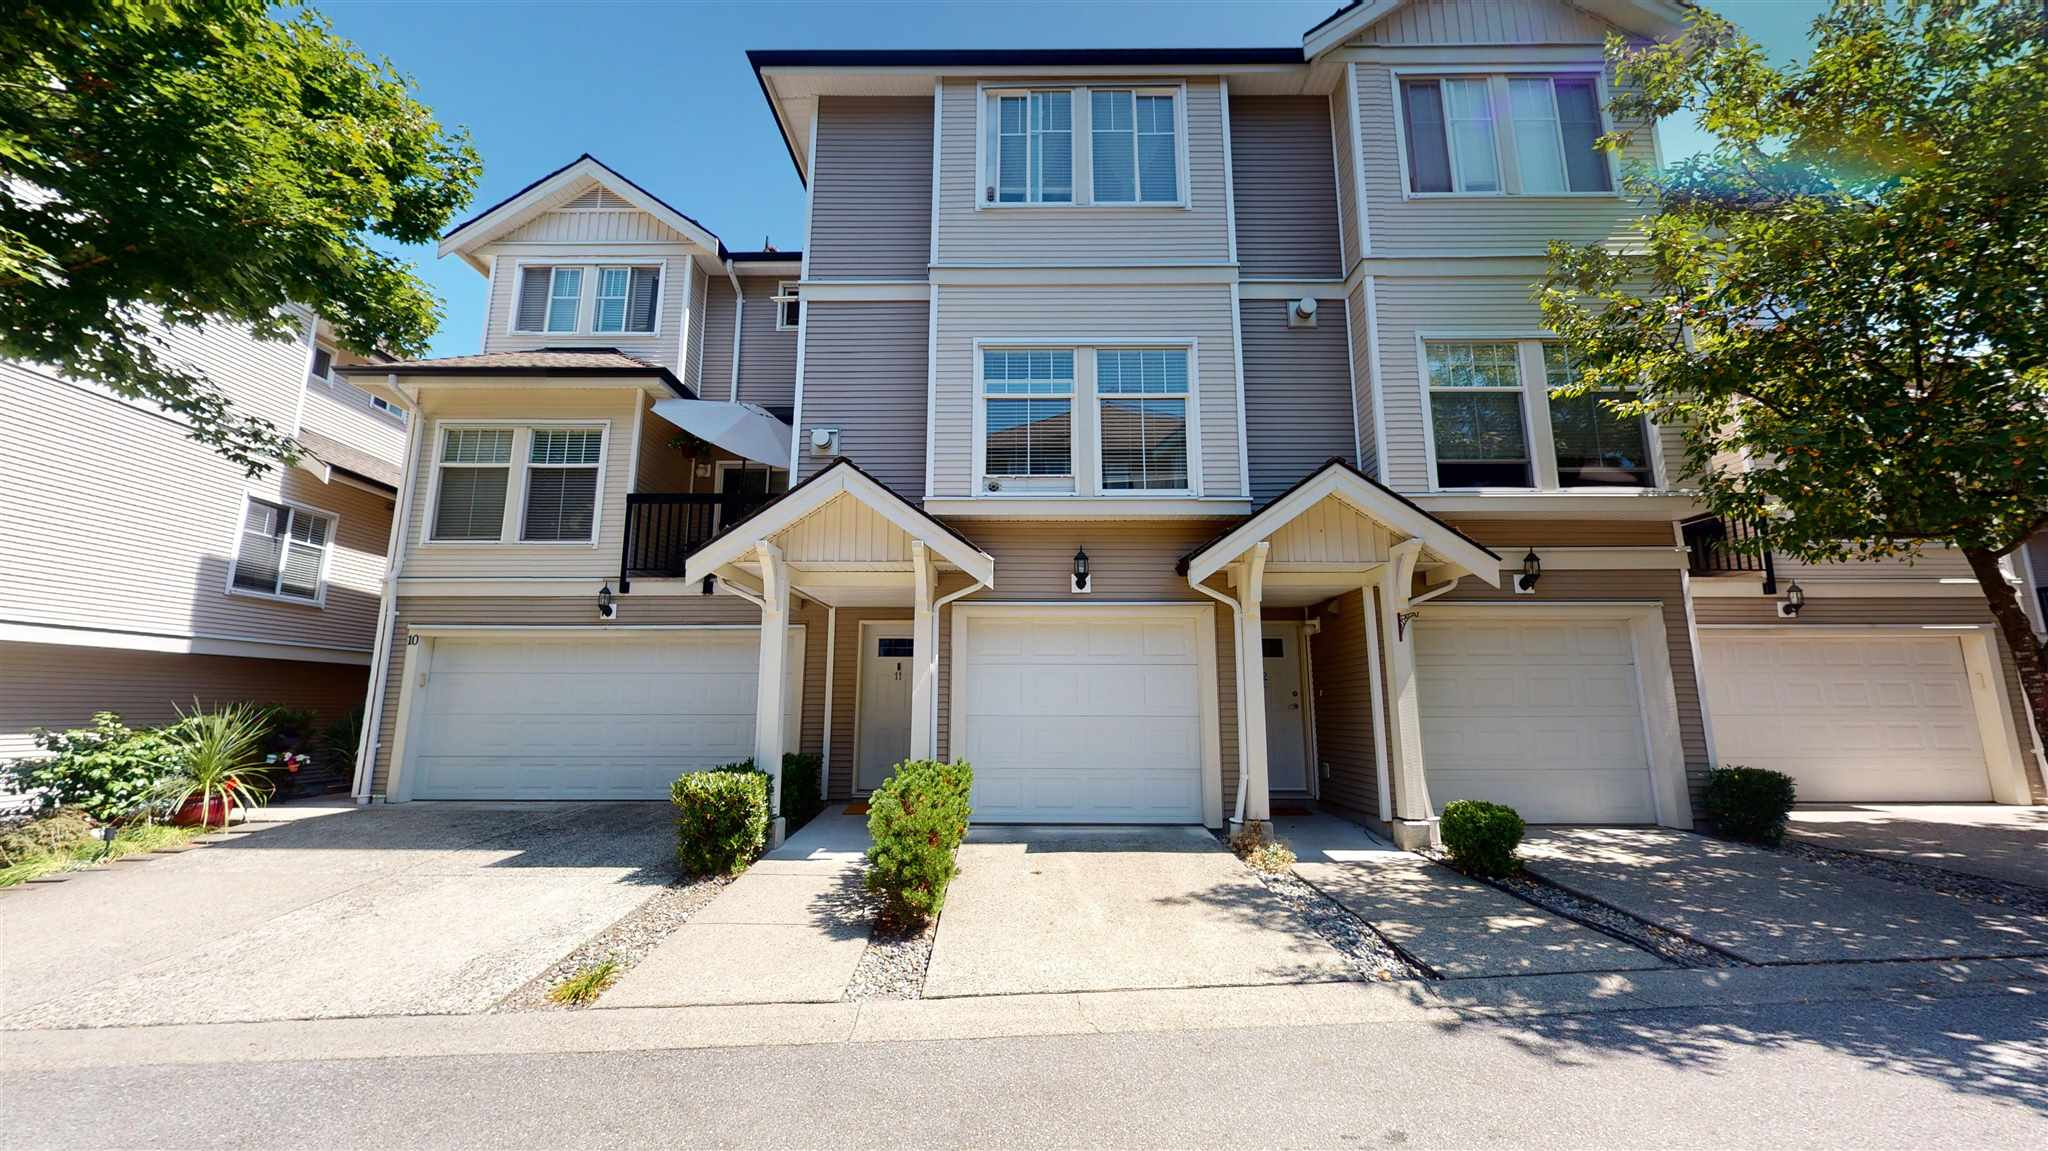 11 21535 88 AVENUE - Walnut Grove Townhouse for sale, 2 Bedrooms (R2605722) - #1